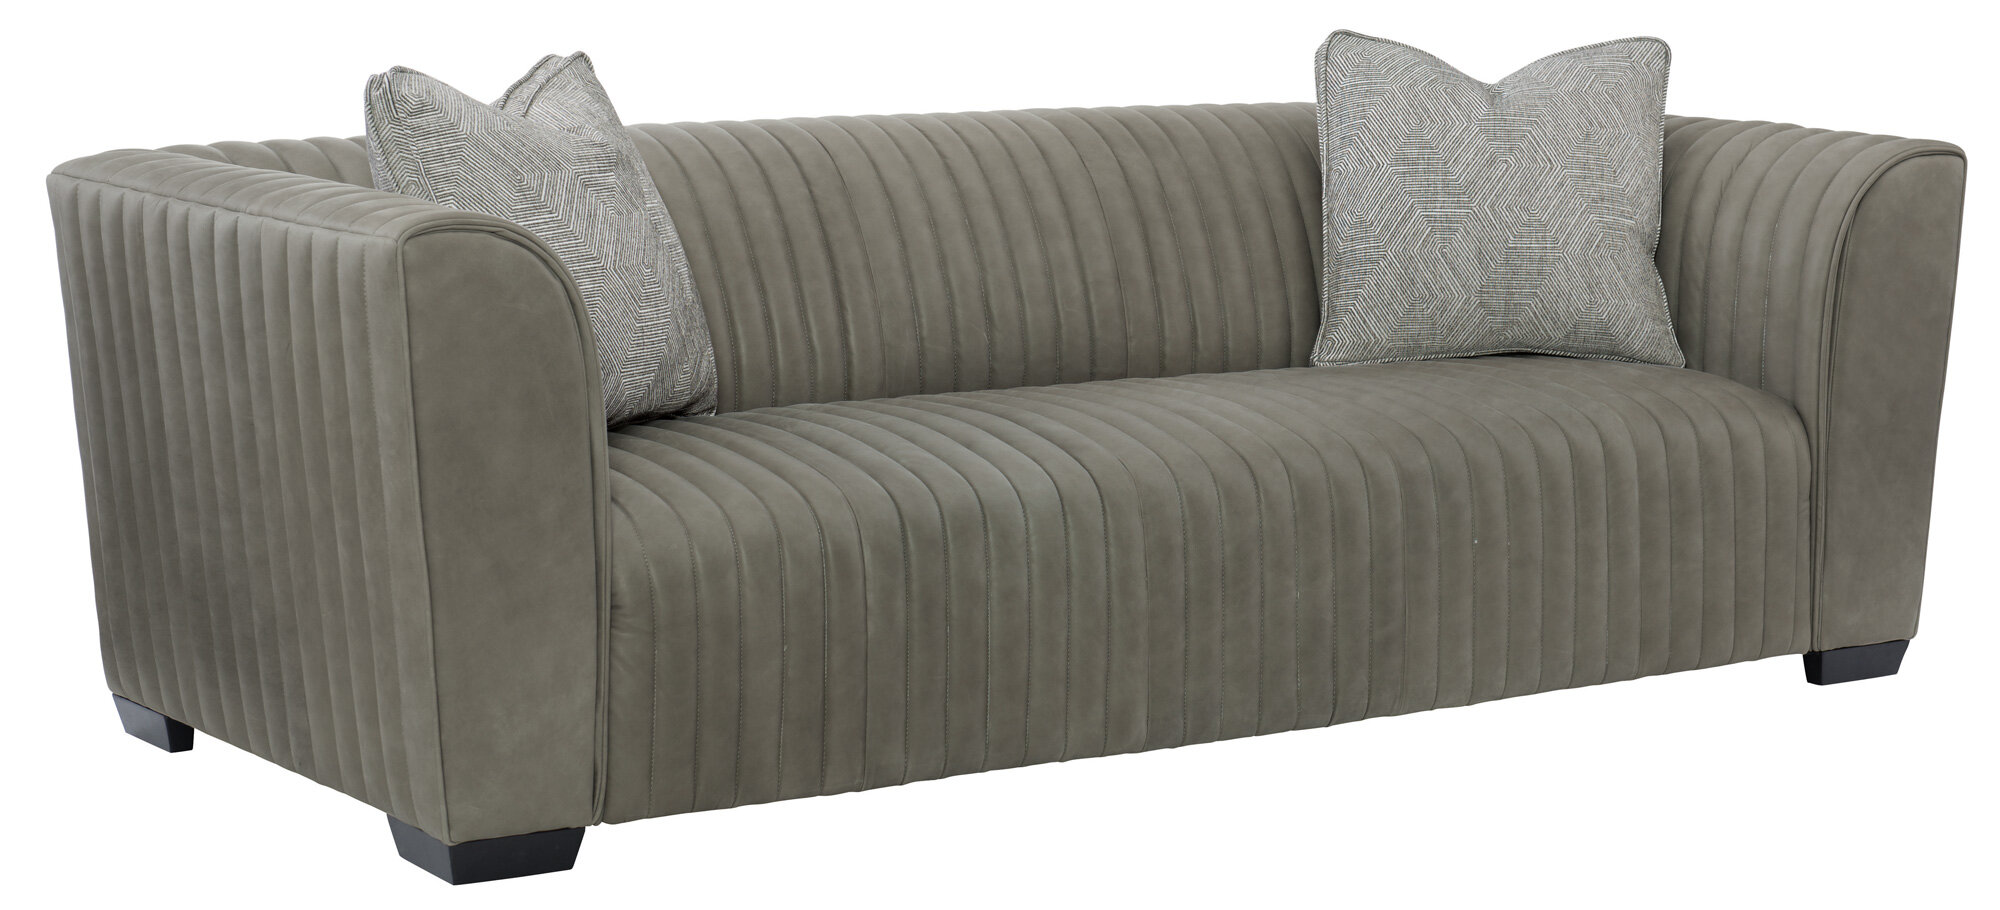 Brilliant Bernhardt Foster Sofa Wayfair Interior Design Ideas Inesswwsoteloinfo